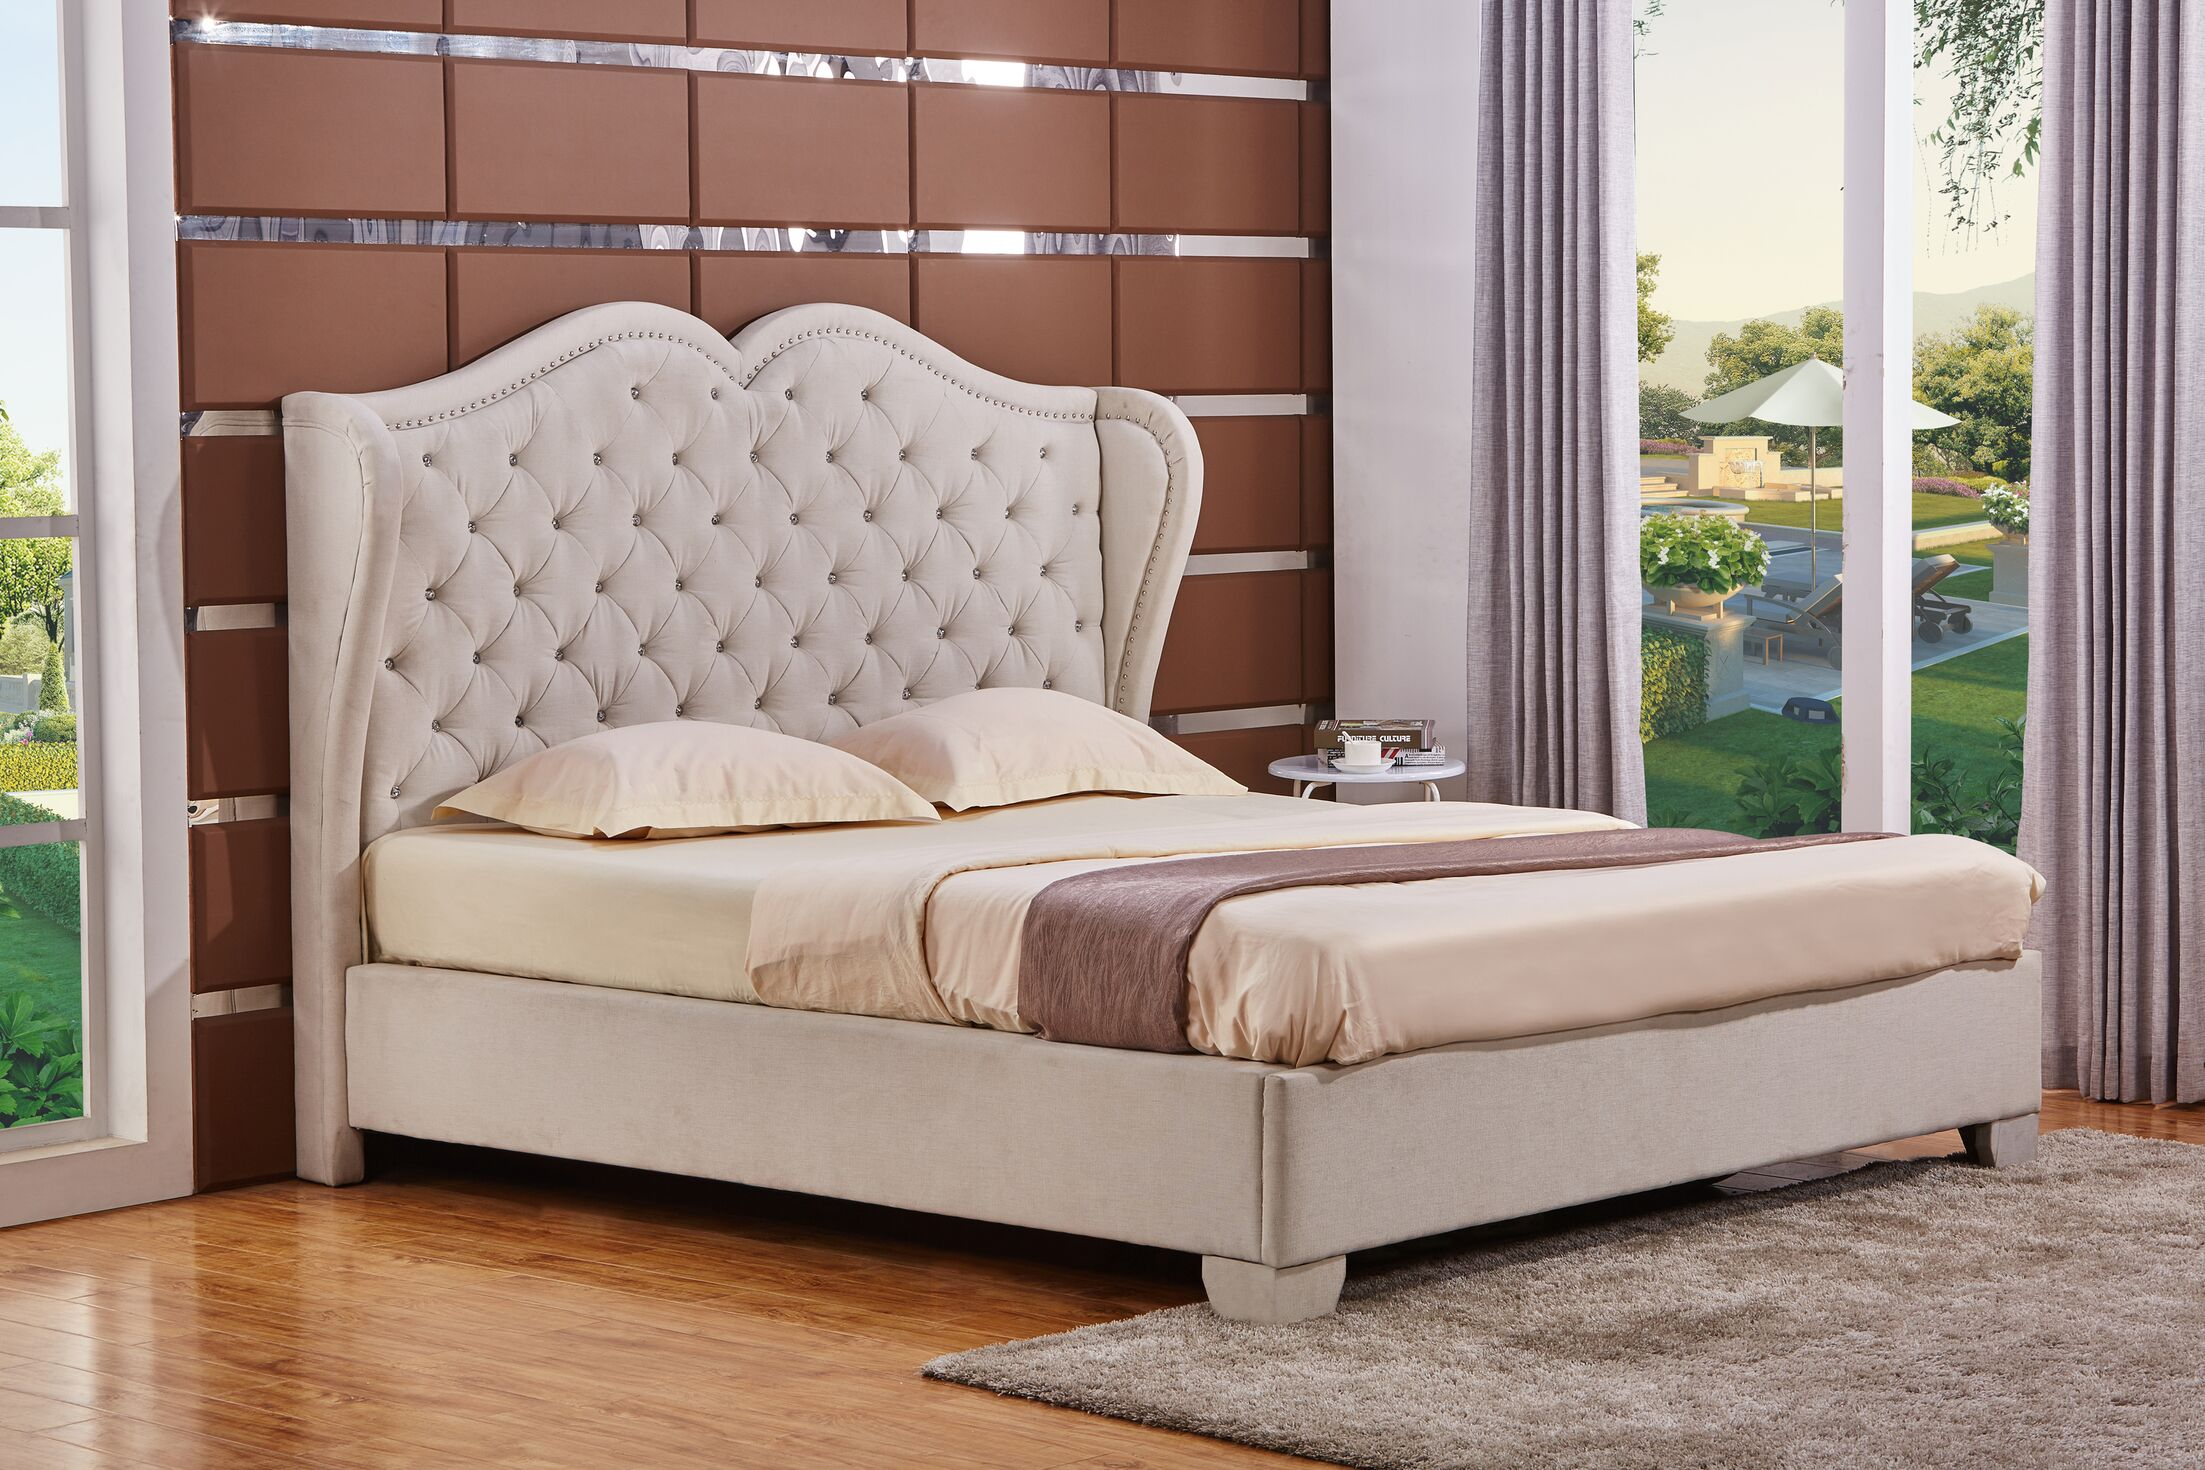 Upholstered Panel Bed Size: King, Color: White